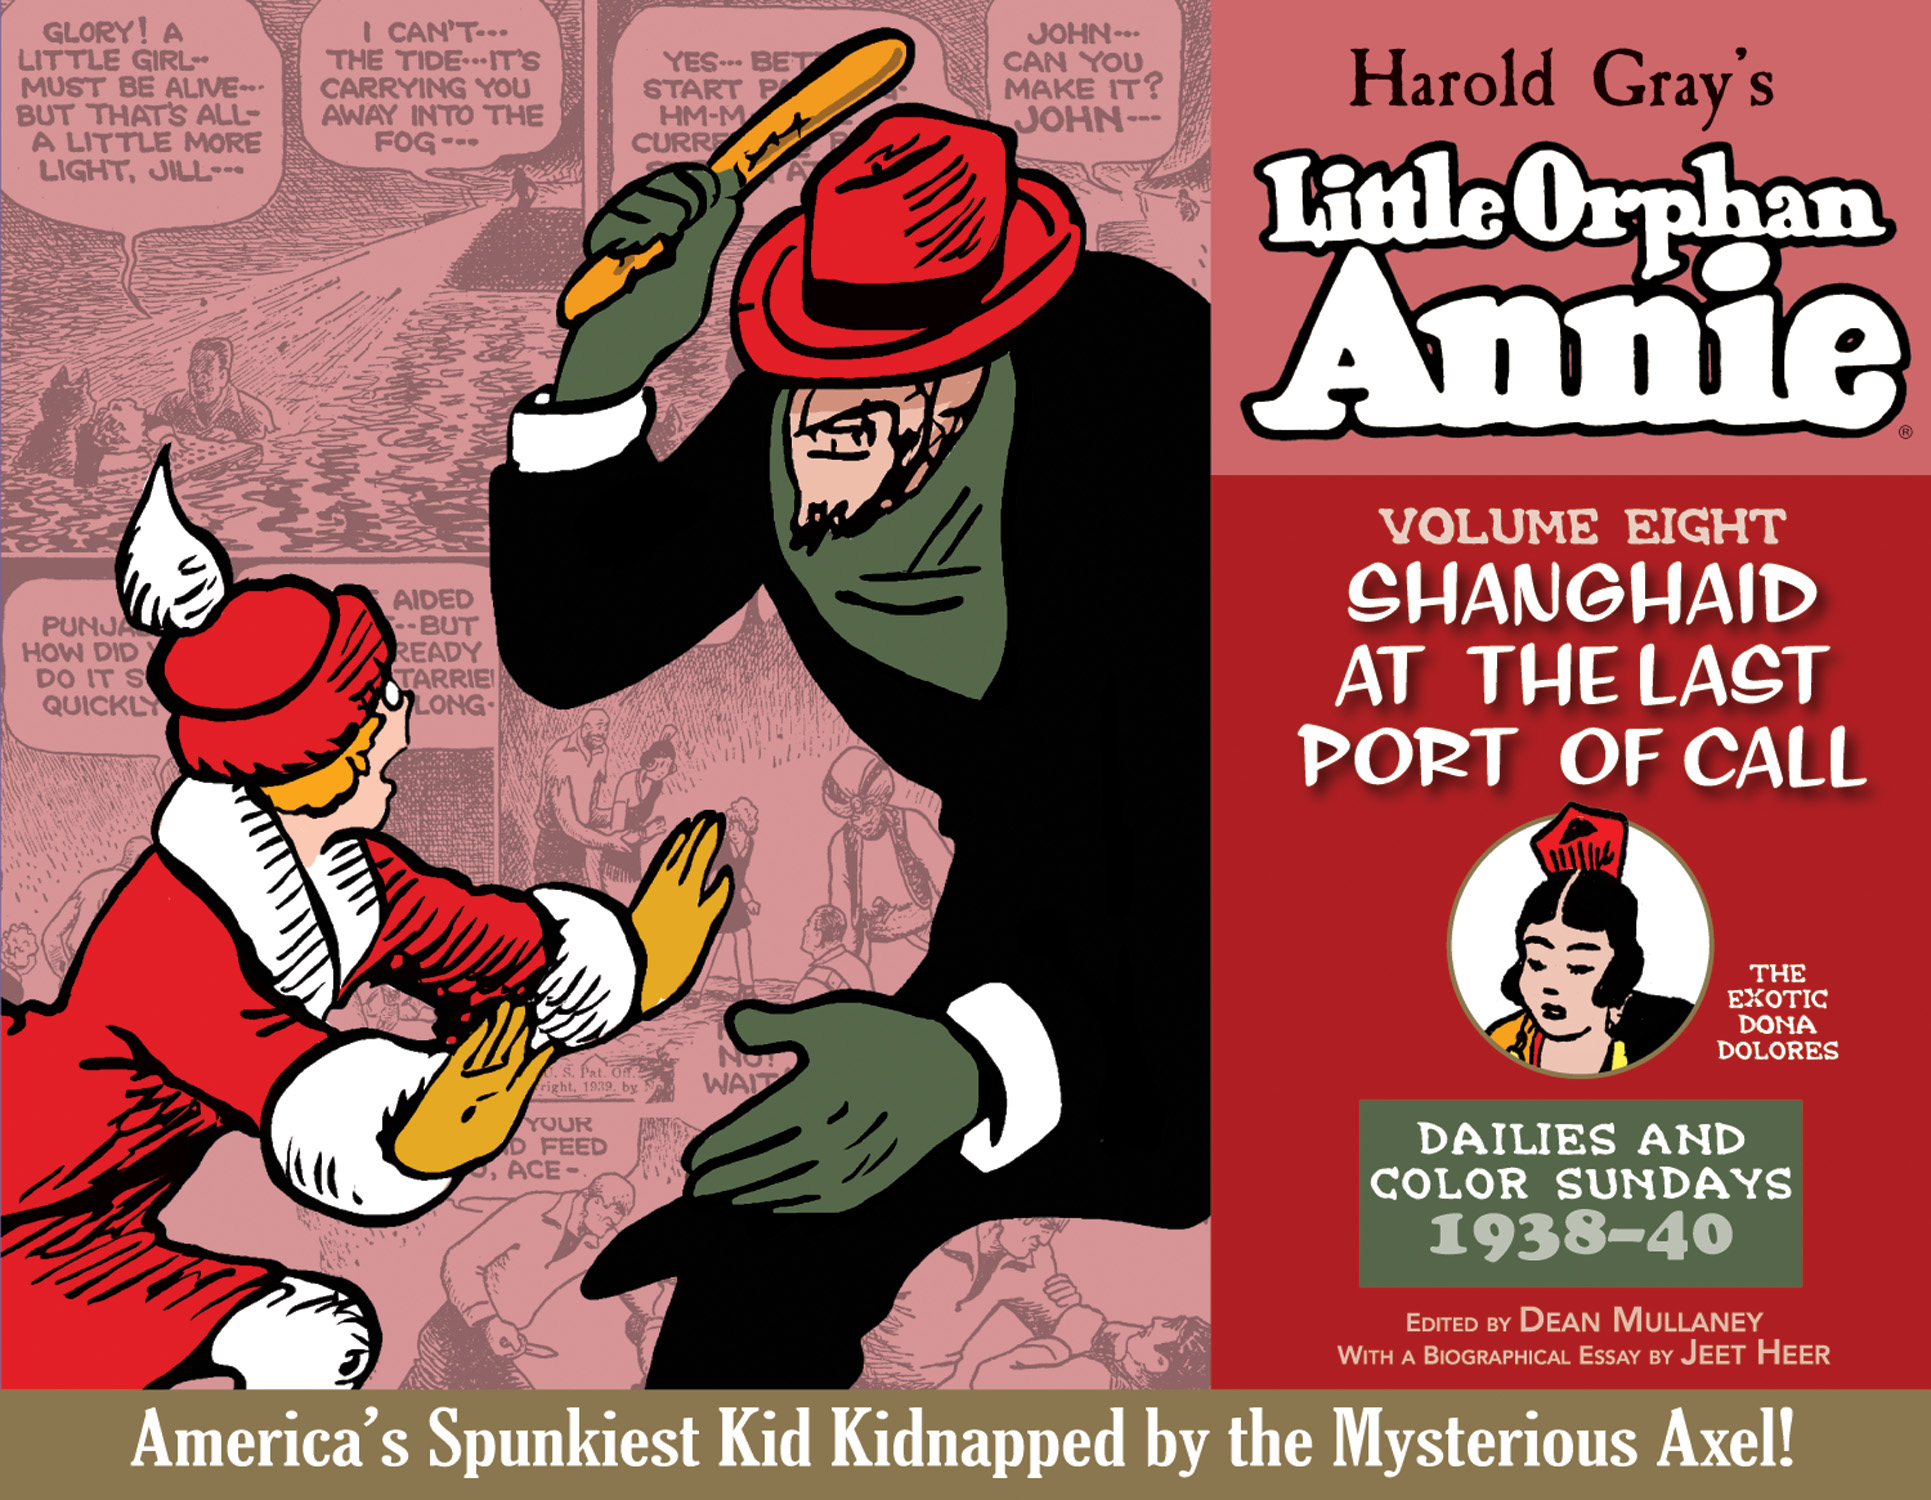 Little Orphan Annie Vol 8